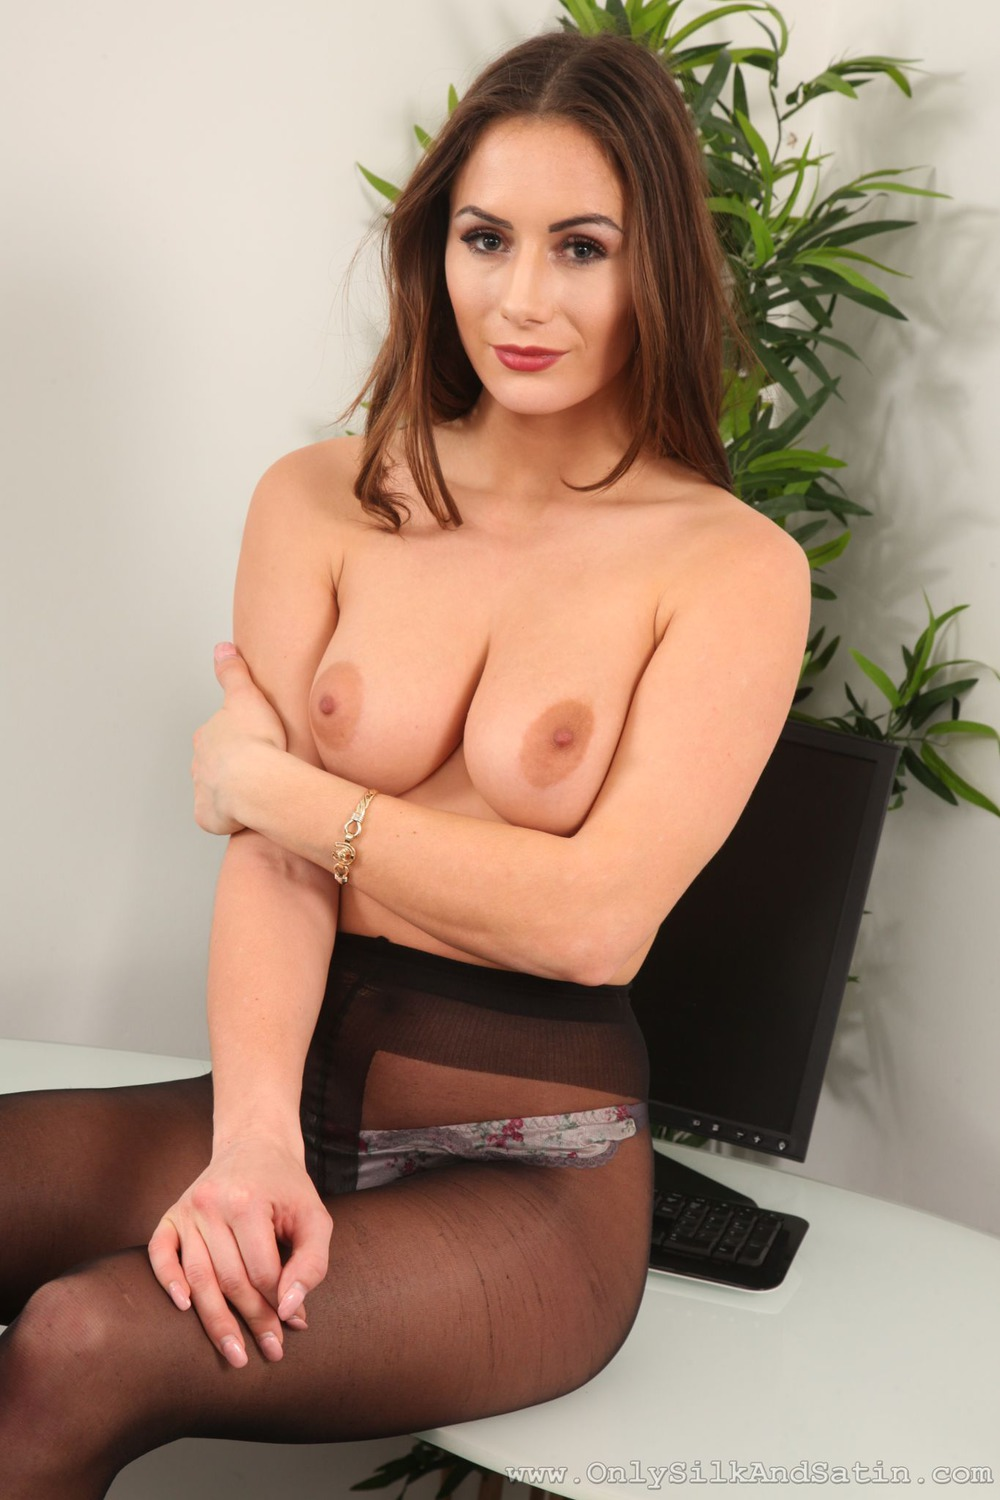 Laura H Sexy Secretary Strips at Nightdreambabe: www.nightdreambabe.com/laura-h-sexy-secretary-strips